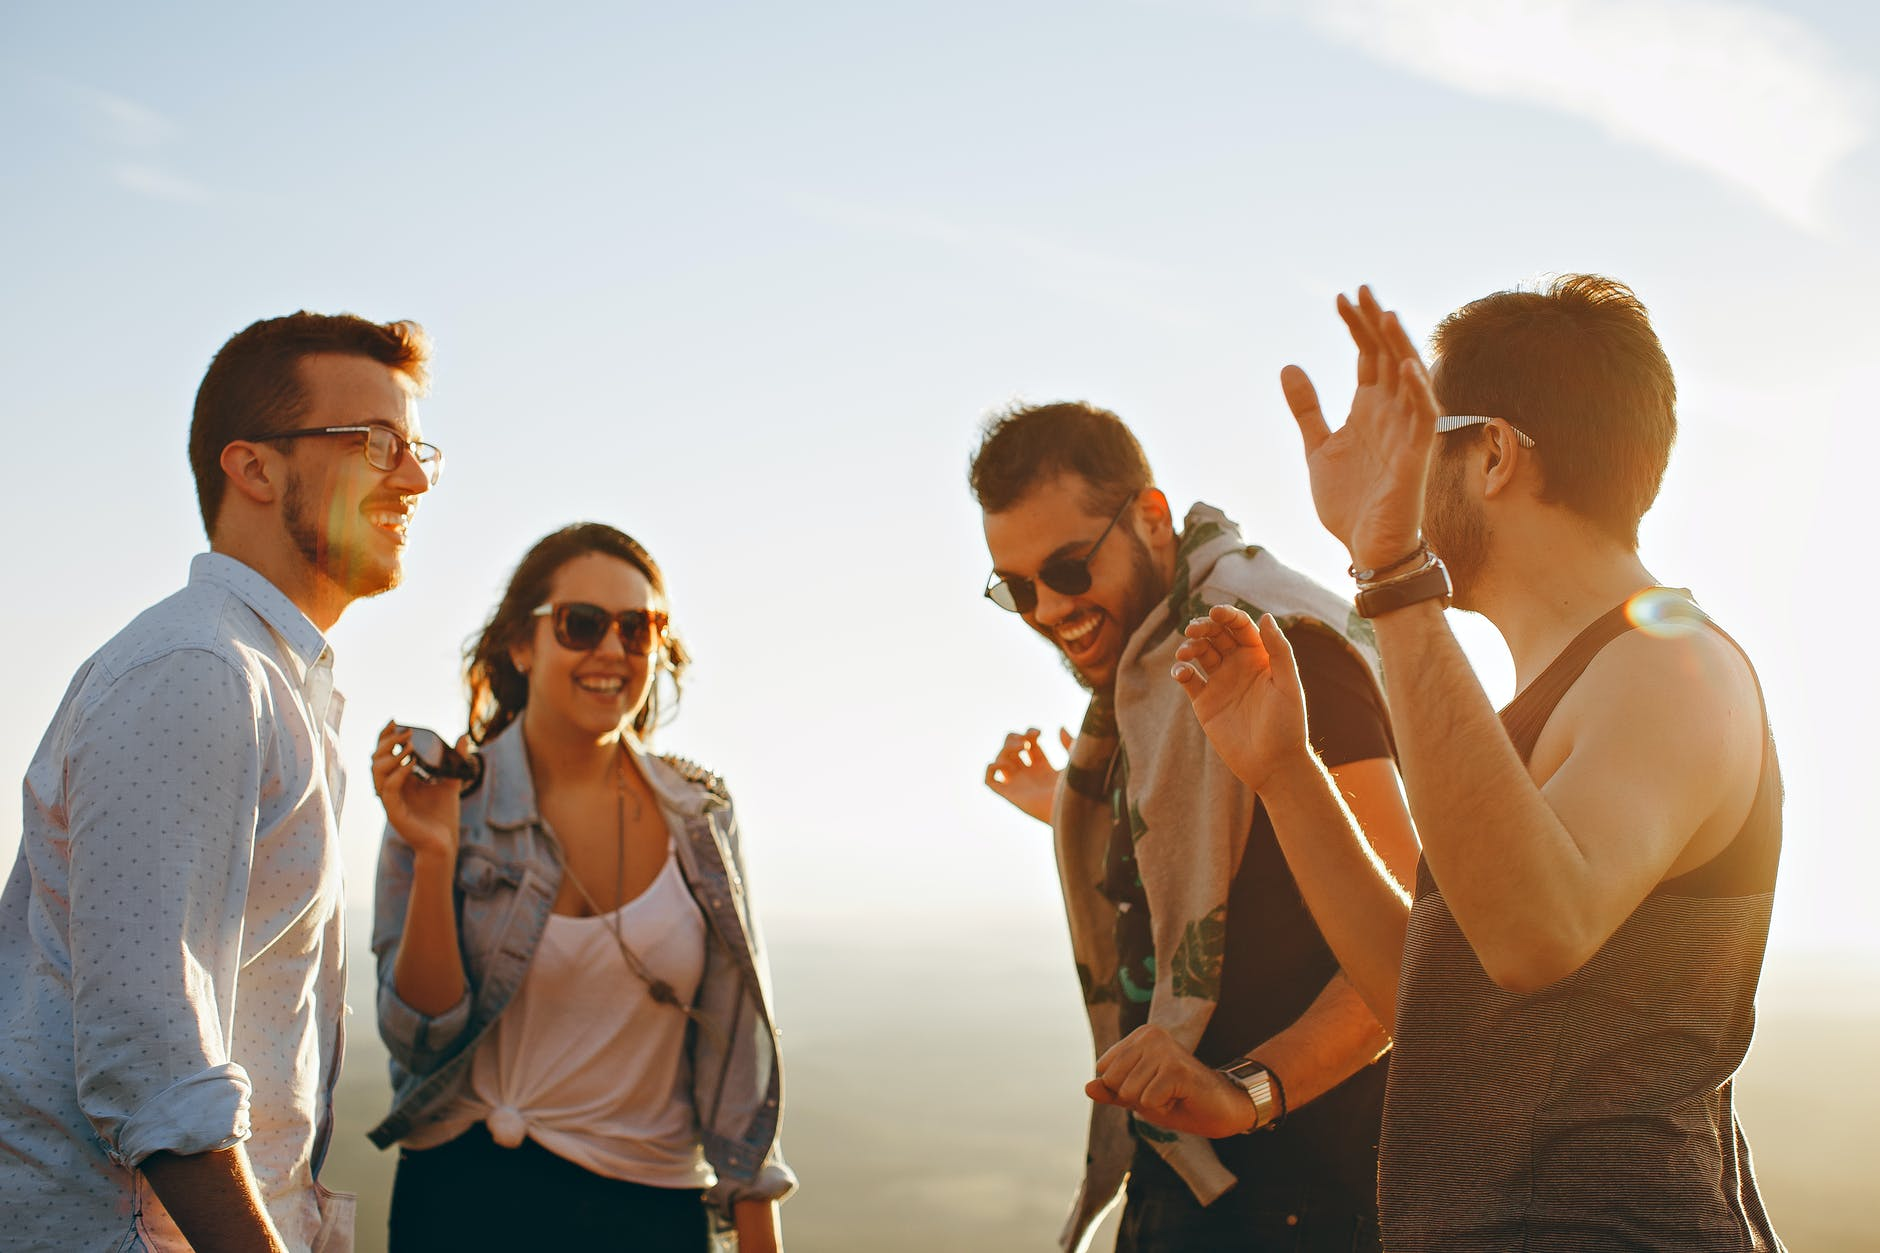 group of people having fun together under the sun